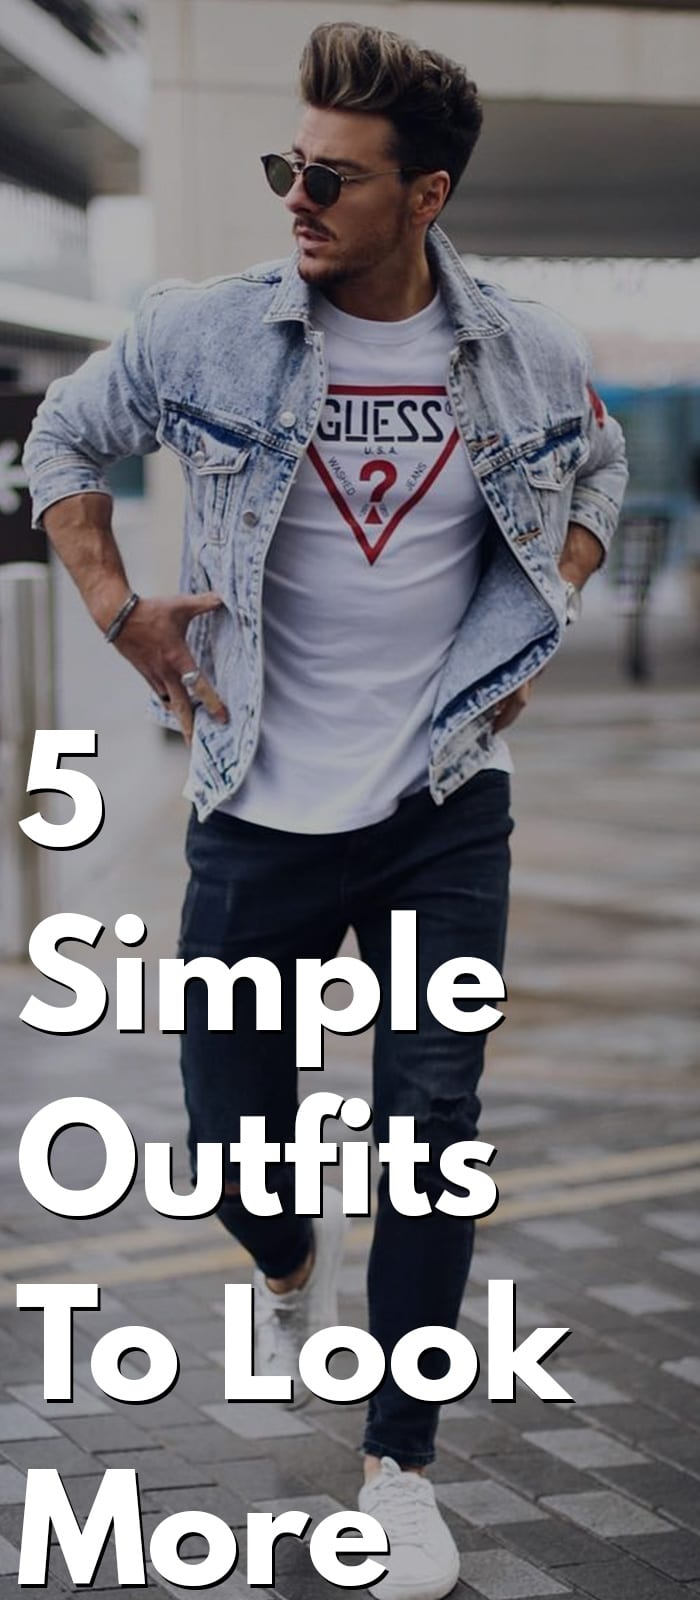 Outfits That Make You Look More Muscular - Short Sleeve T-shirt, Balanced Outfit, White Shirt, etc